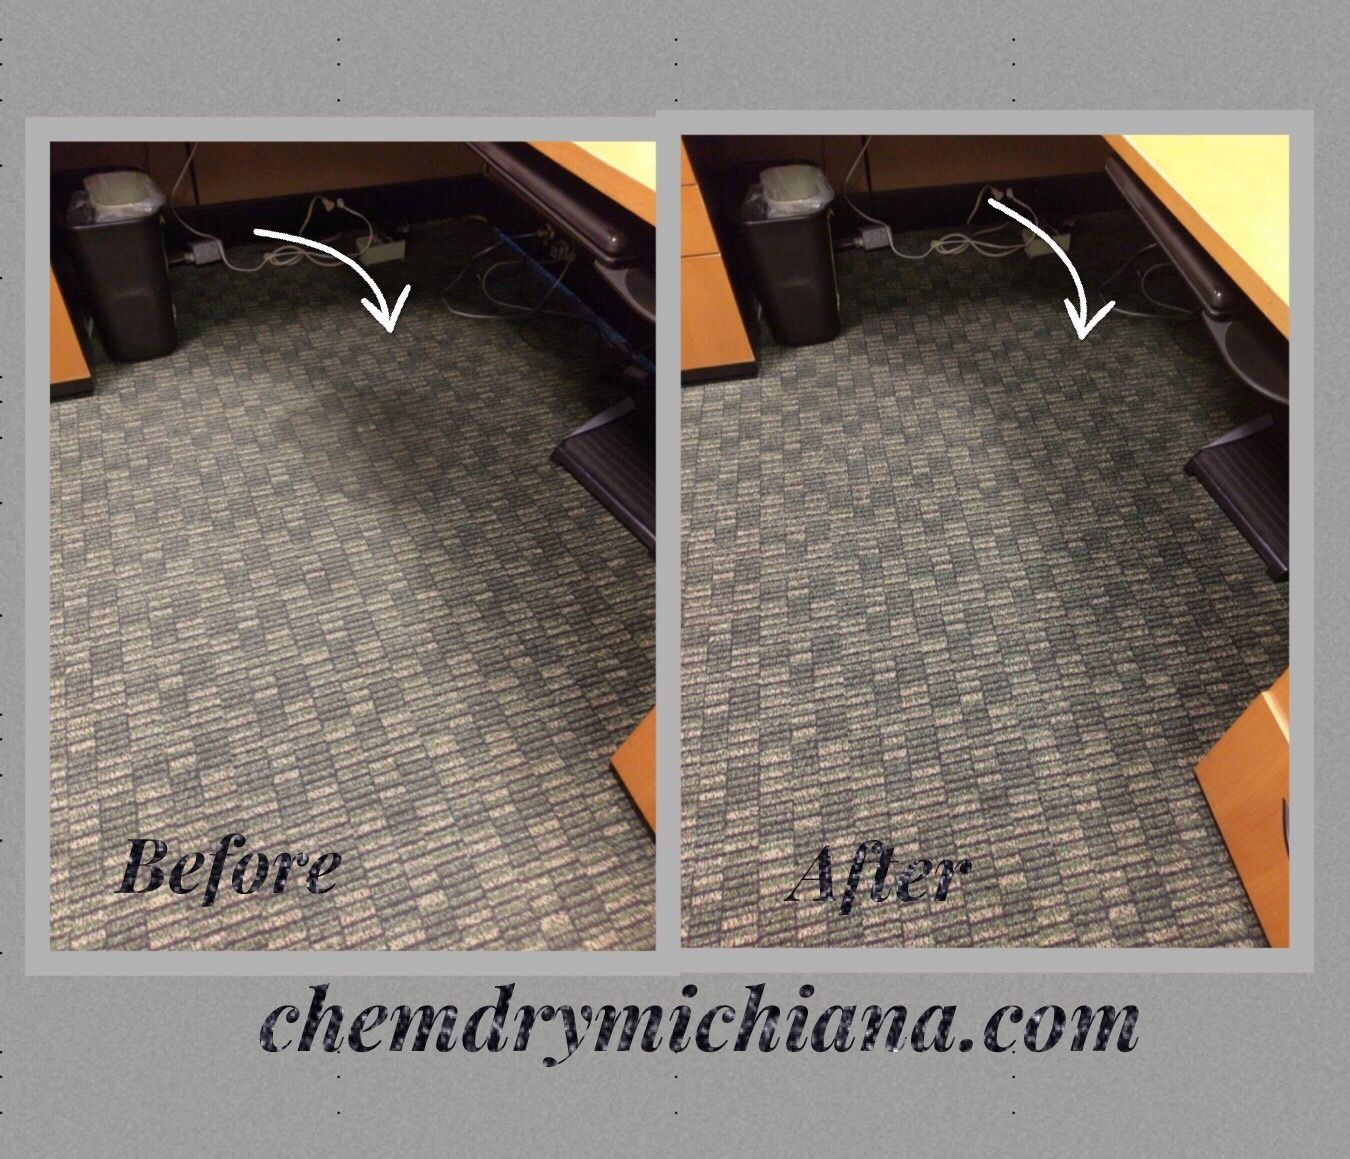 Before After Chem Dry Carpet Cleaning Amazing Results And Dries In 1 2 Hours Cleaning Upholstery Dry Carpet Cleaning Cleaning Carpet Stains